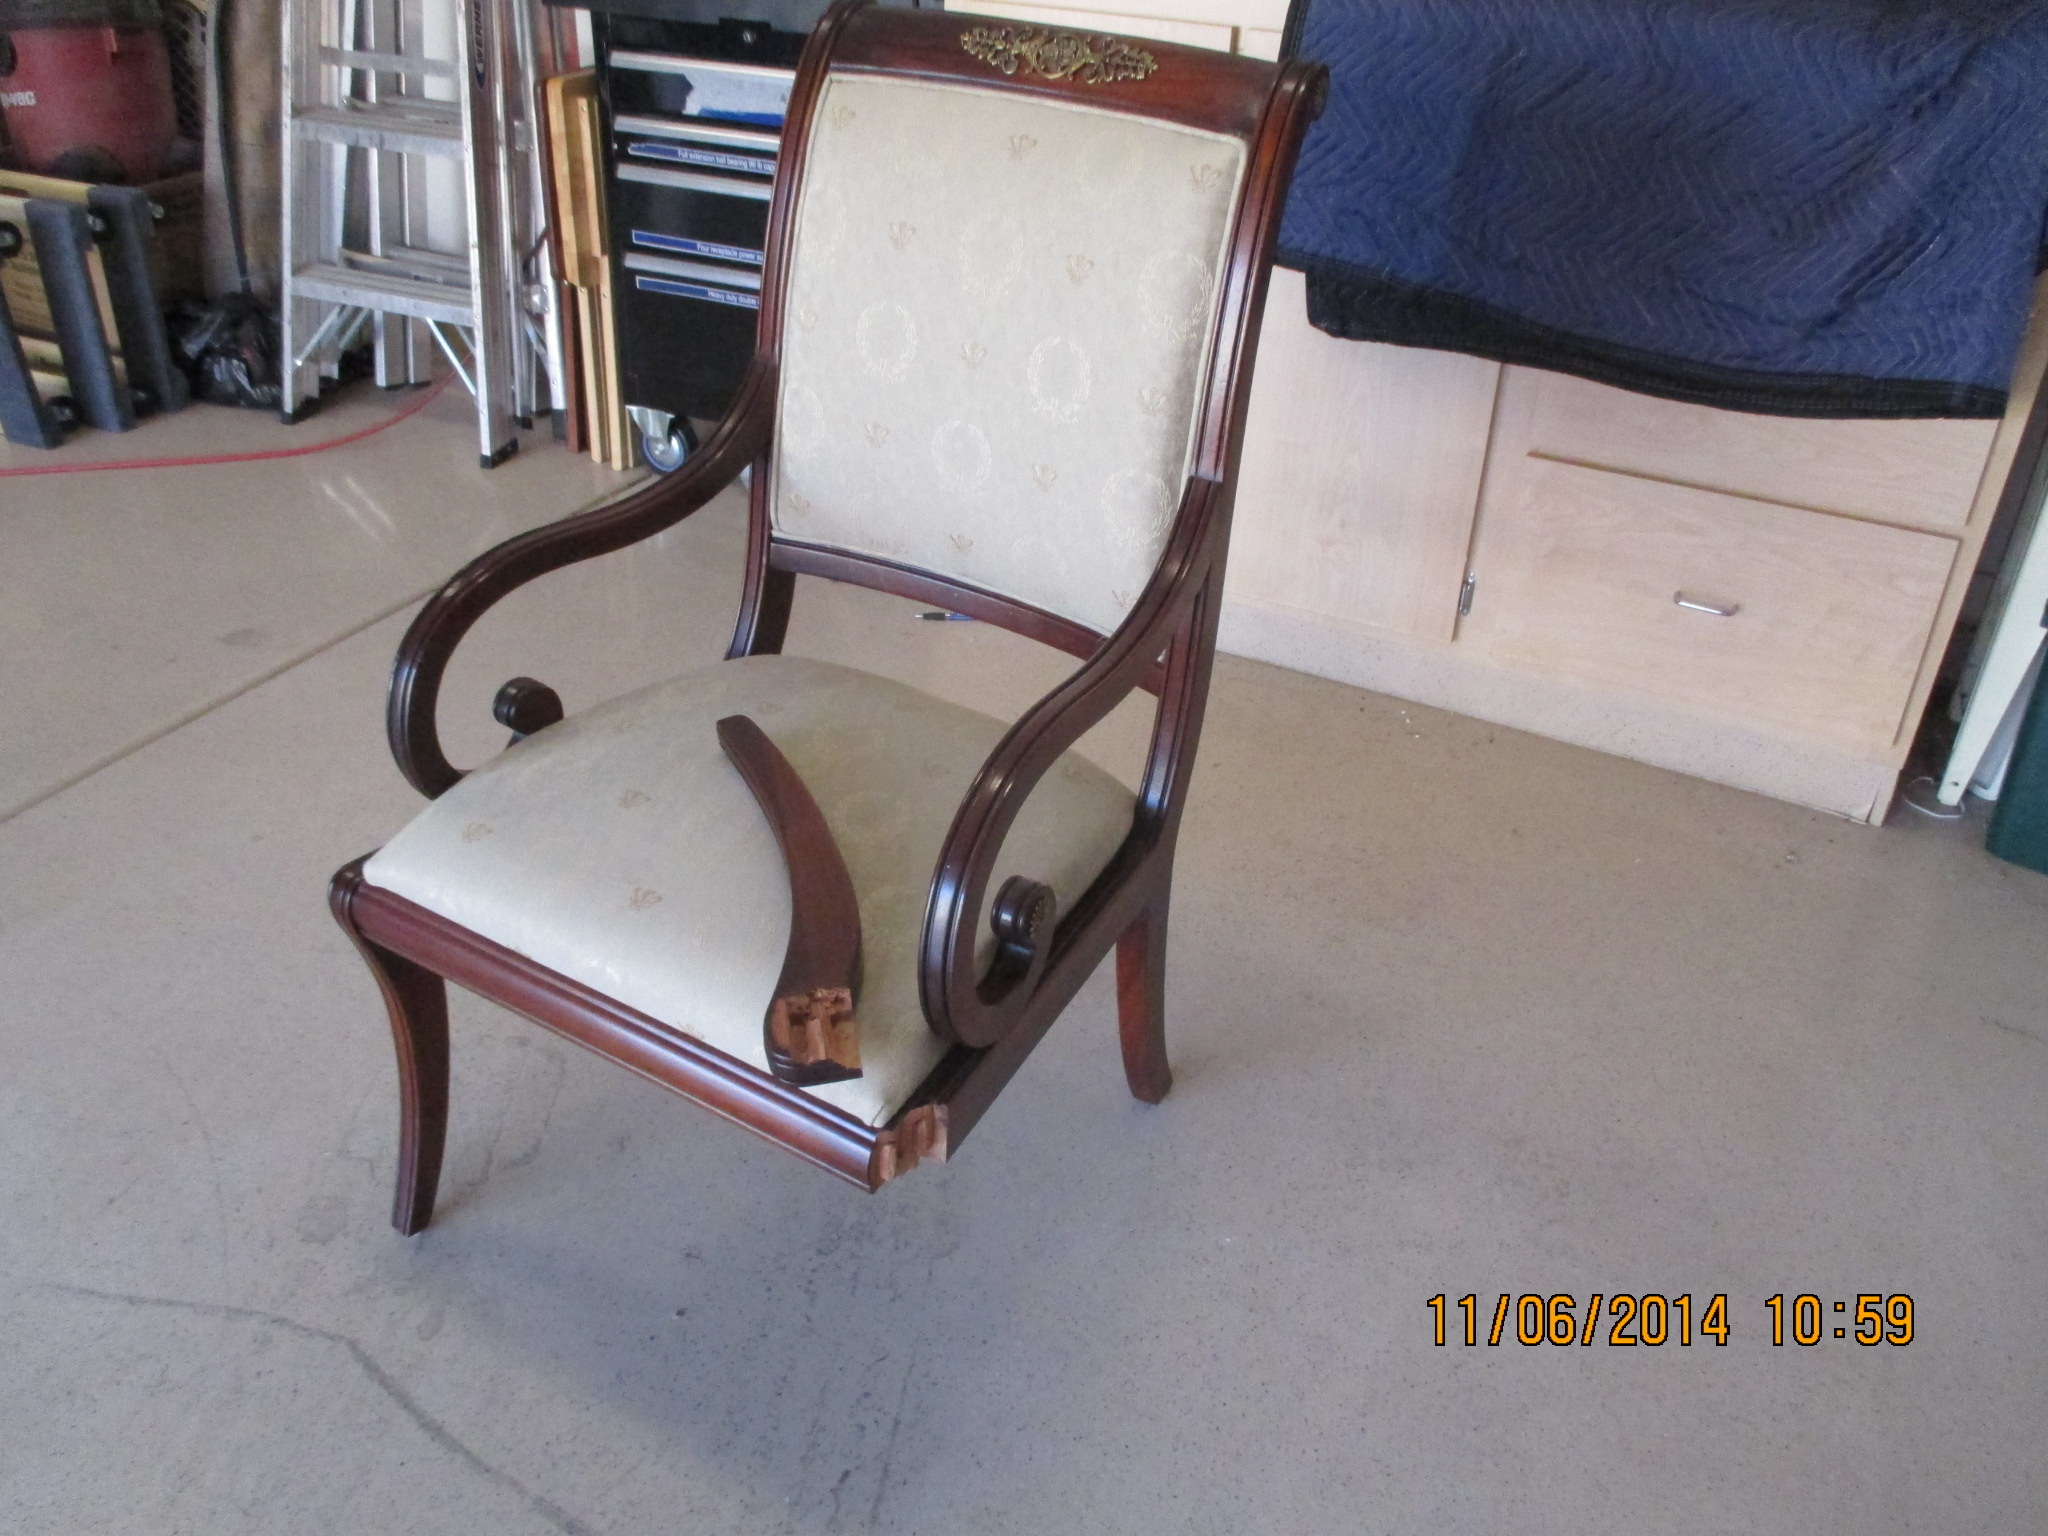 Weathersby Guild Furniture Repair In Phoenix Az Whitepages